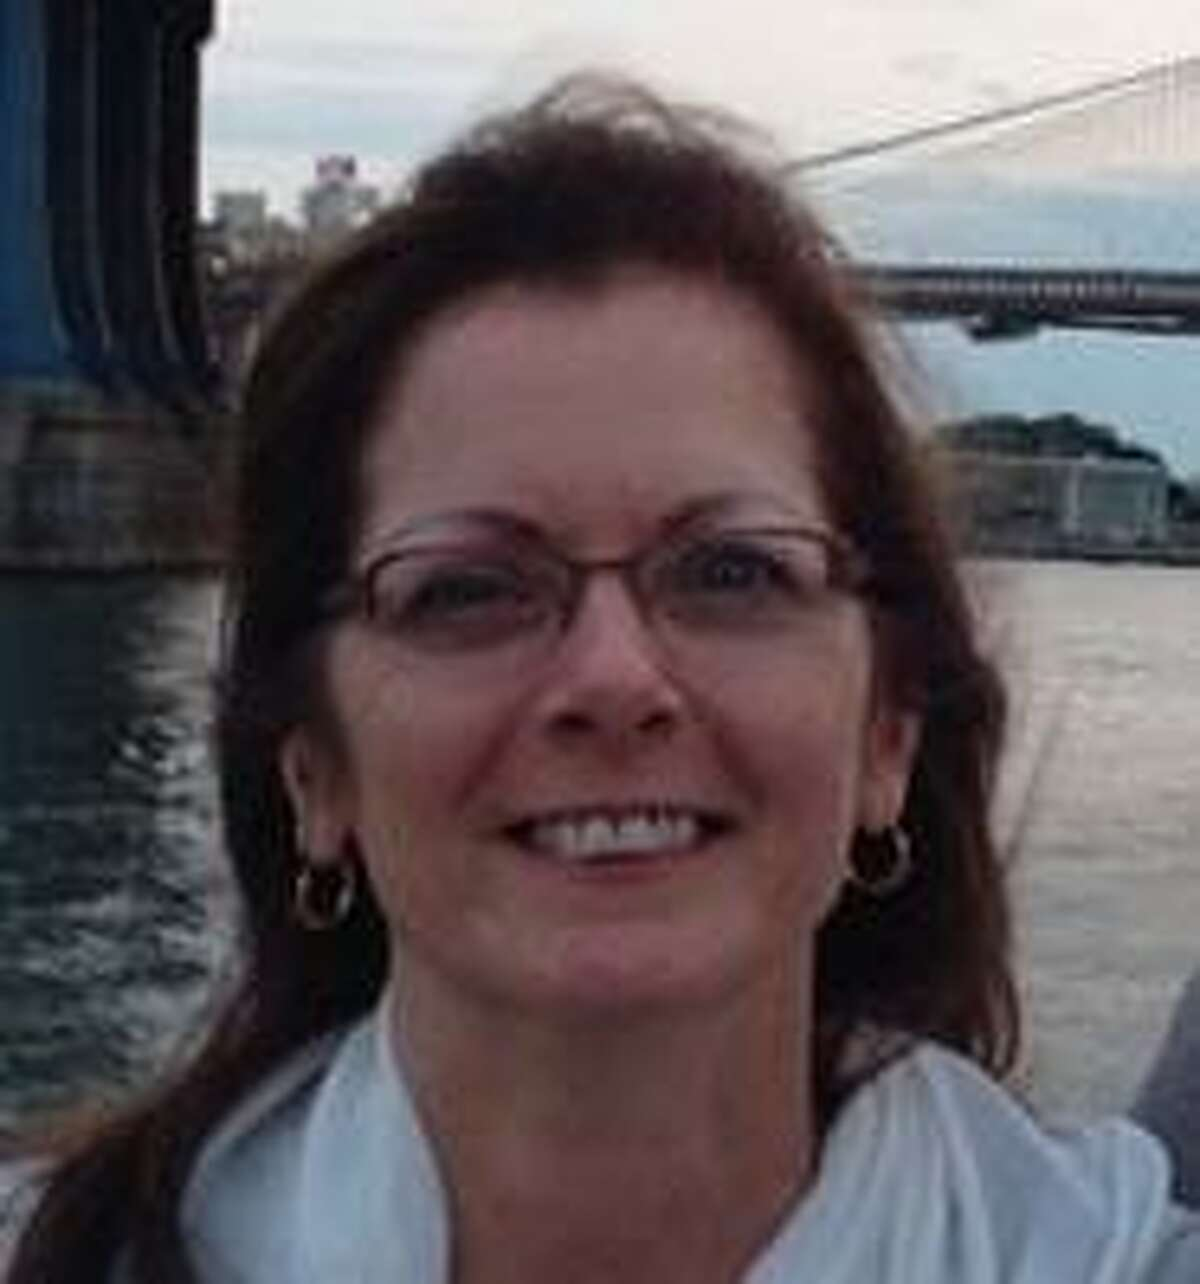 Lynette Wagner, 58, of Fairfield was struck and killed while walking across Elm Street on her way to work Tuesday morning.